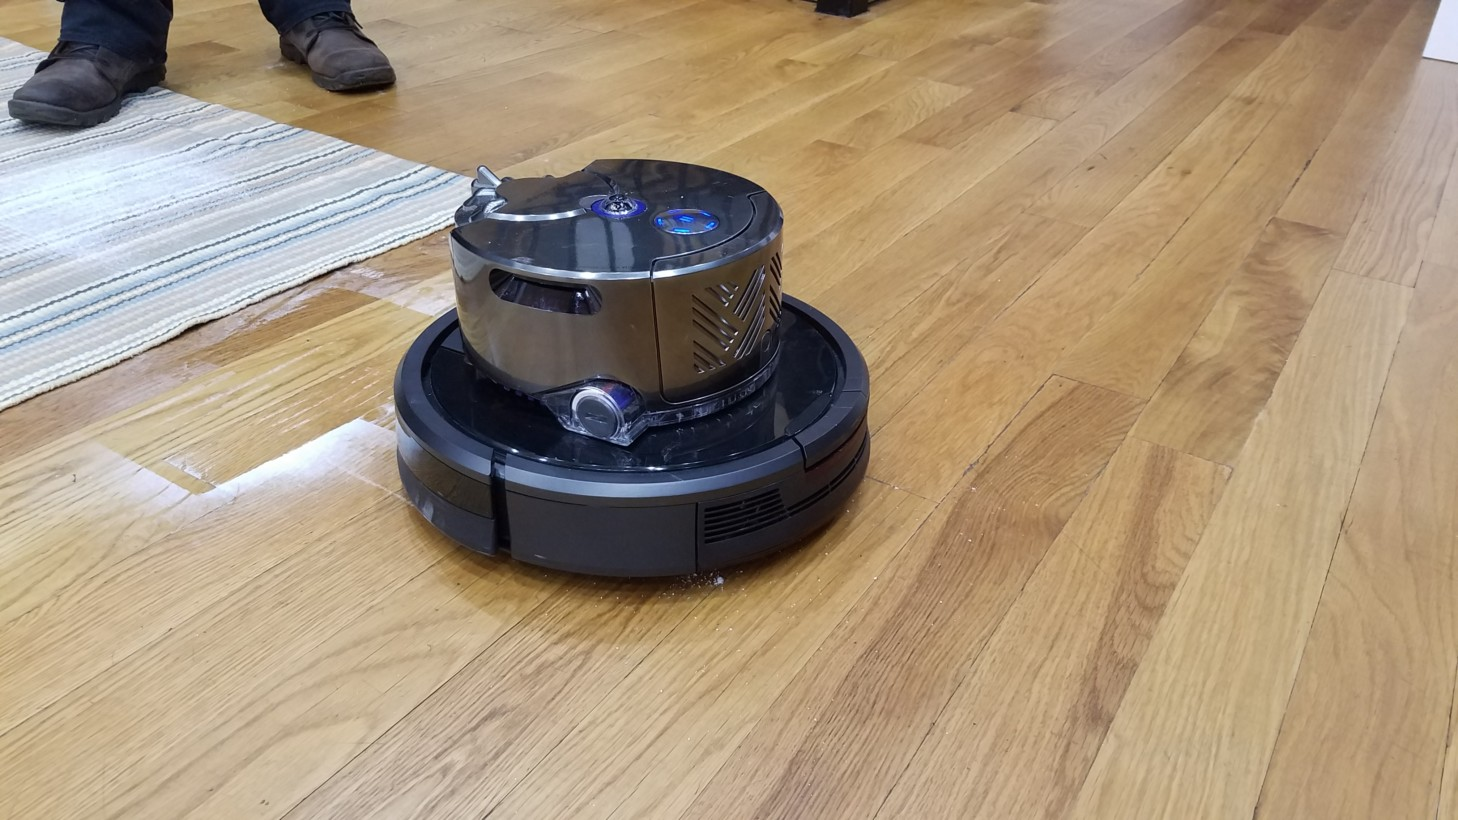 Dyson 360 Eye on top of a Roomba